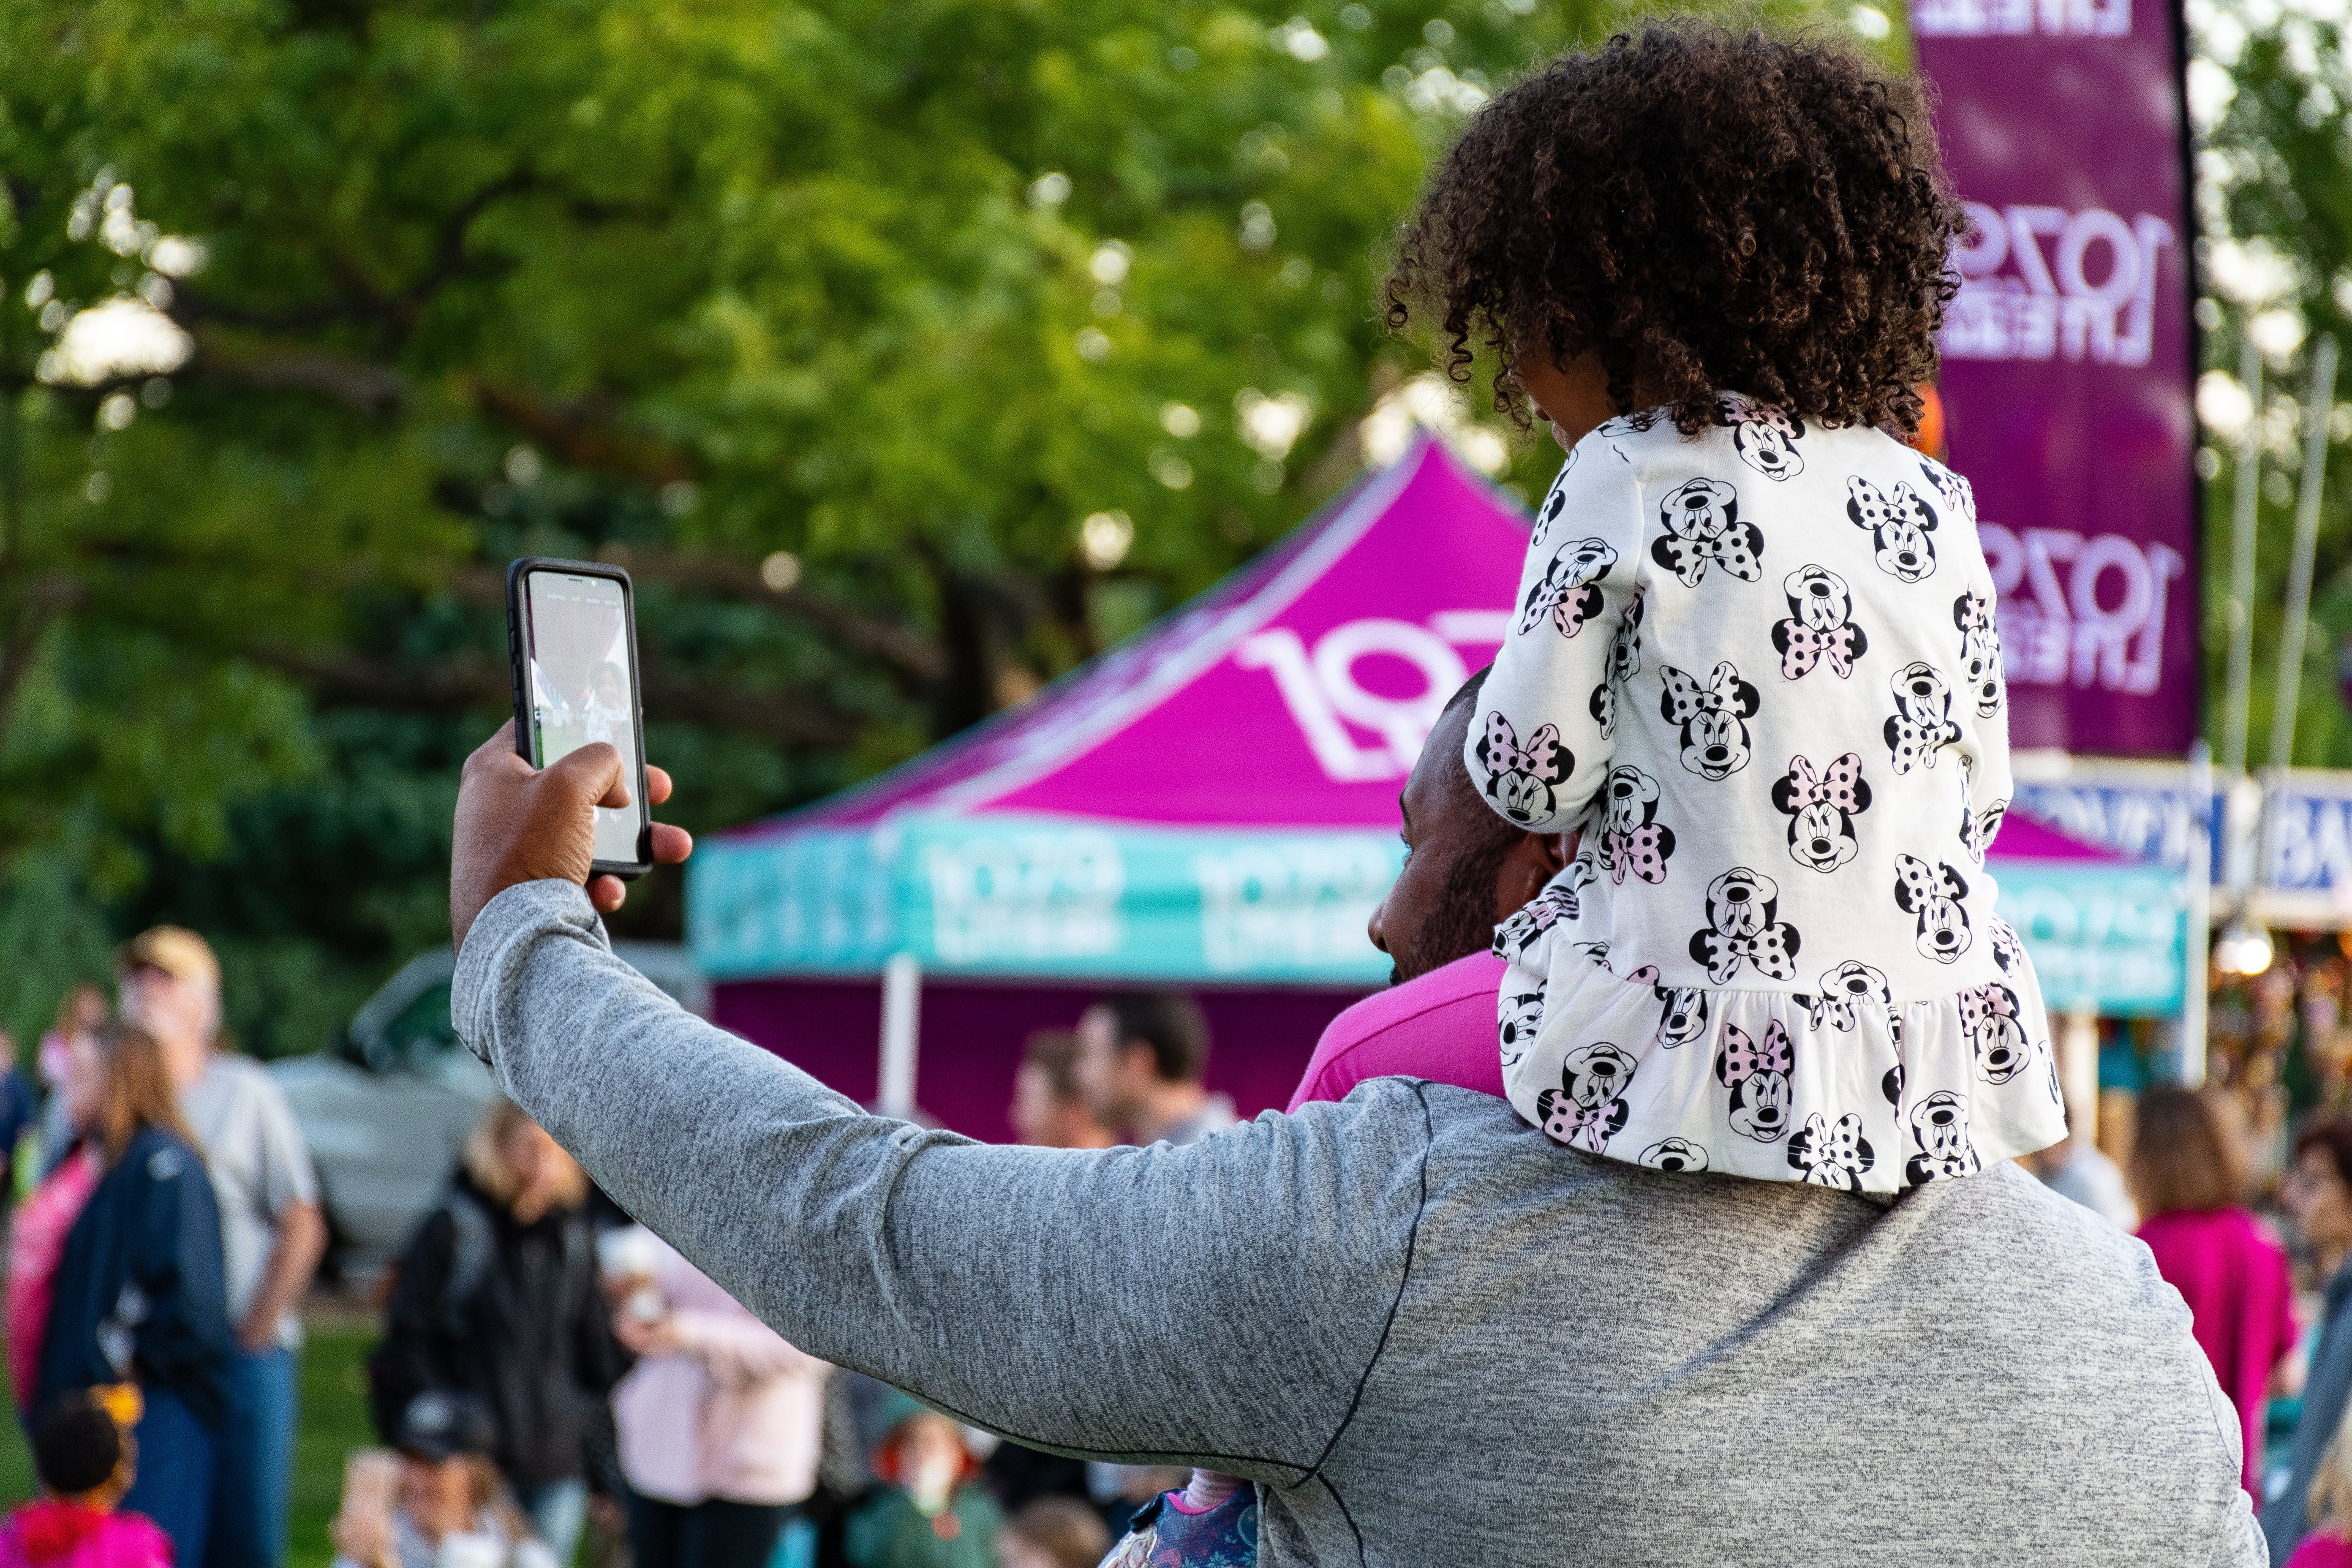 Man Taking Selfie With Girl Riding on Him